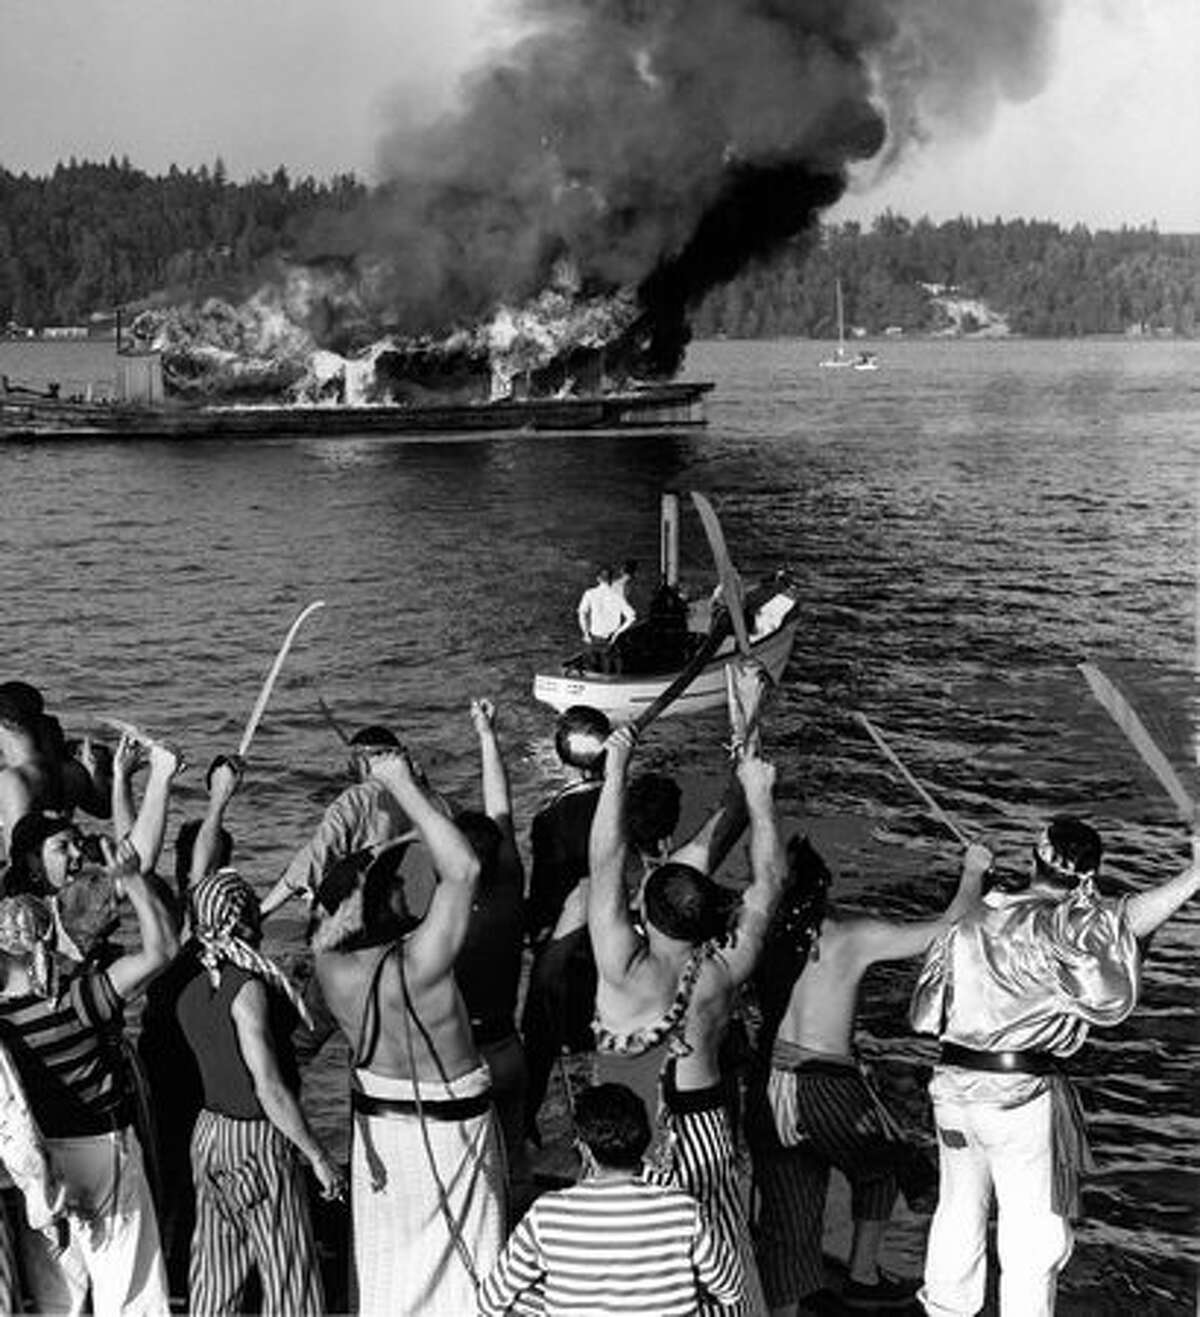 Seafair Pirates burn King Neptune's ship in Andrews Bay off Seward Park tp mark the end of Seafair 1956.